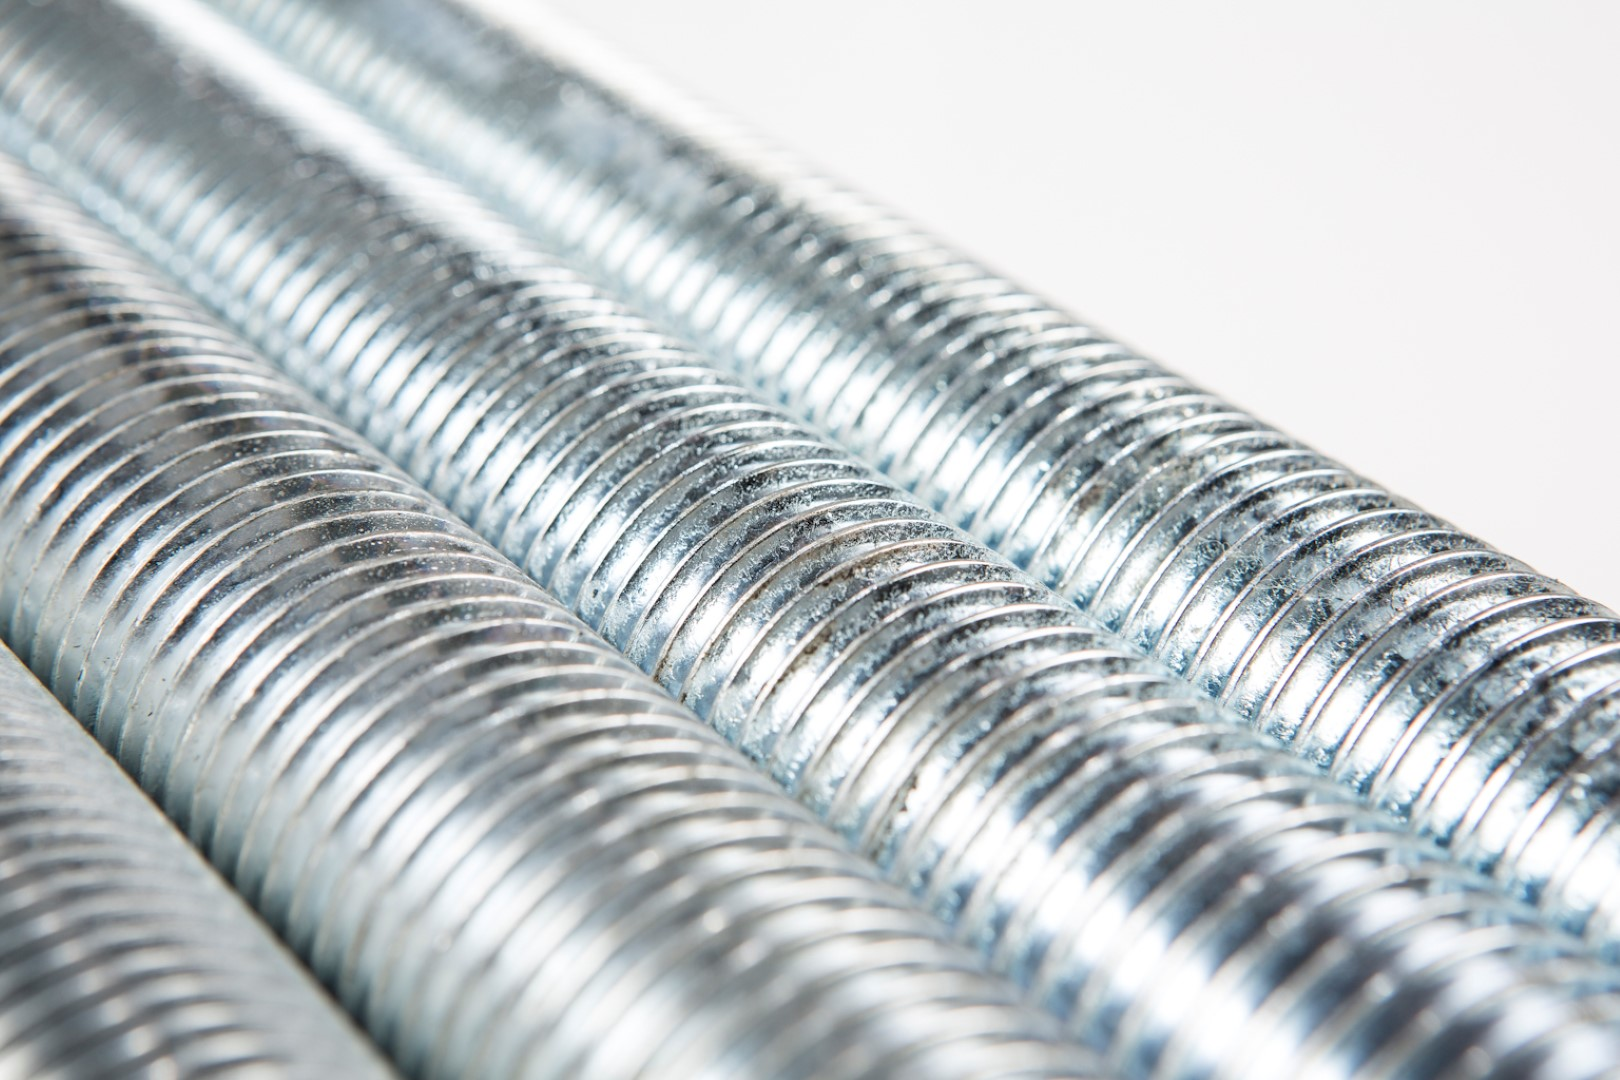 Steel threaded rod with blue-zinc electro plating, also known as fully-threaded bar or threaded stud